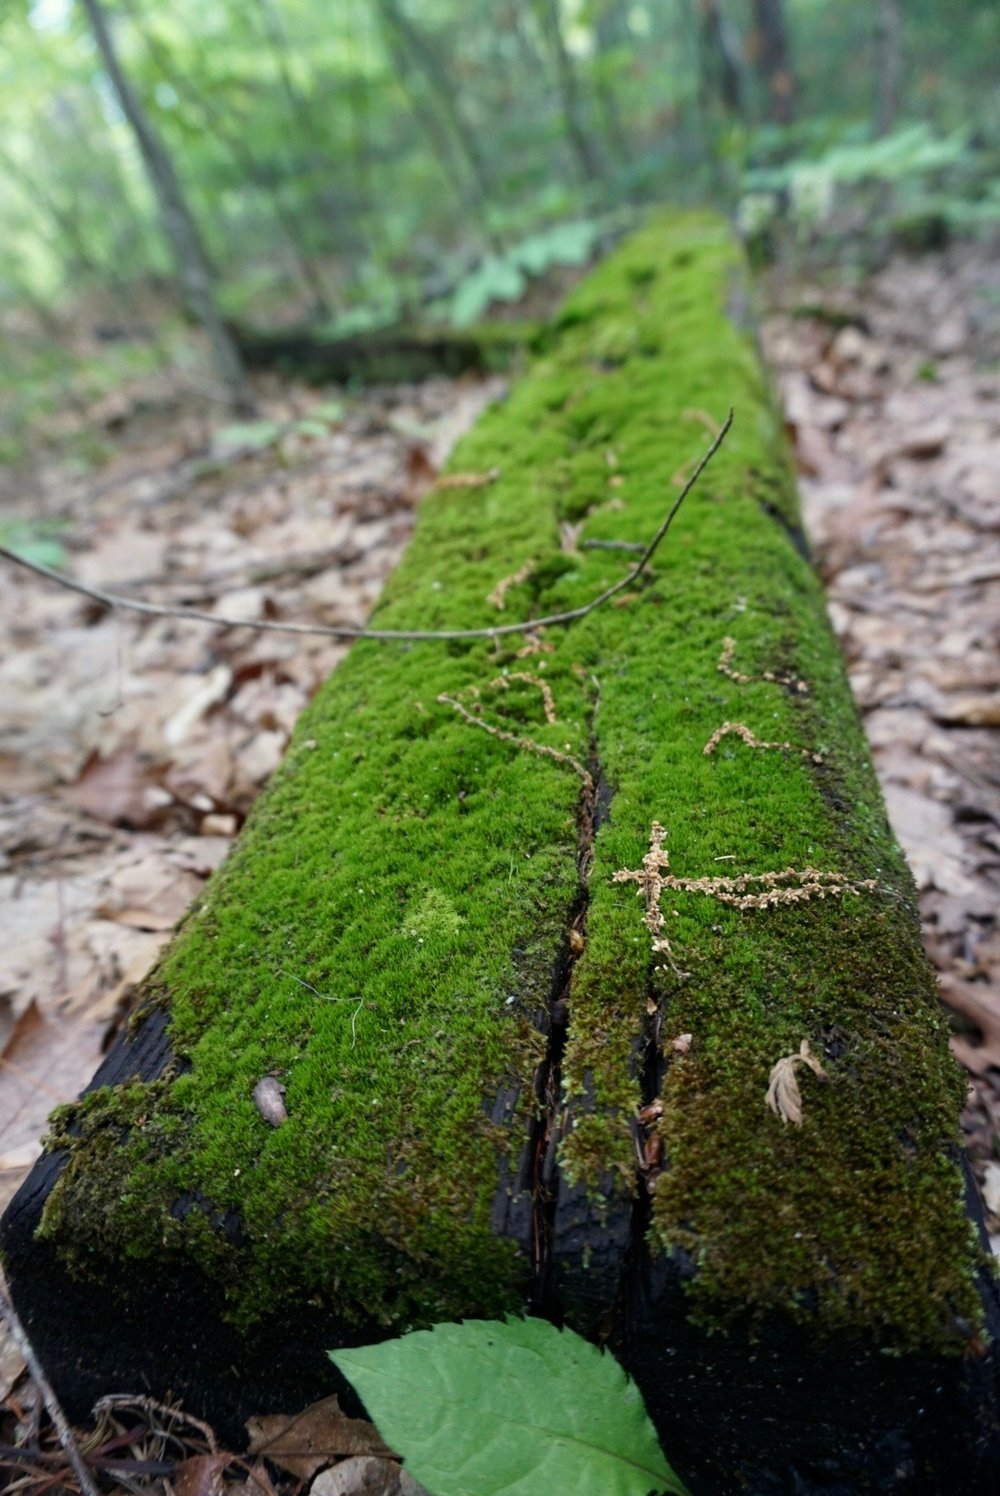 Just some woodland magic. Bren said these looked like pieces of a railroad track, possibly?